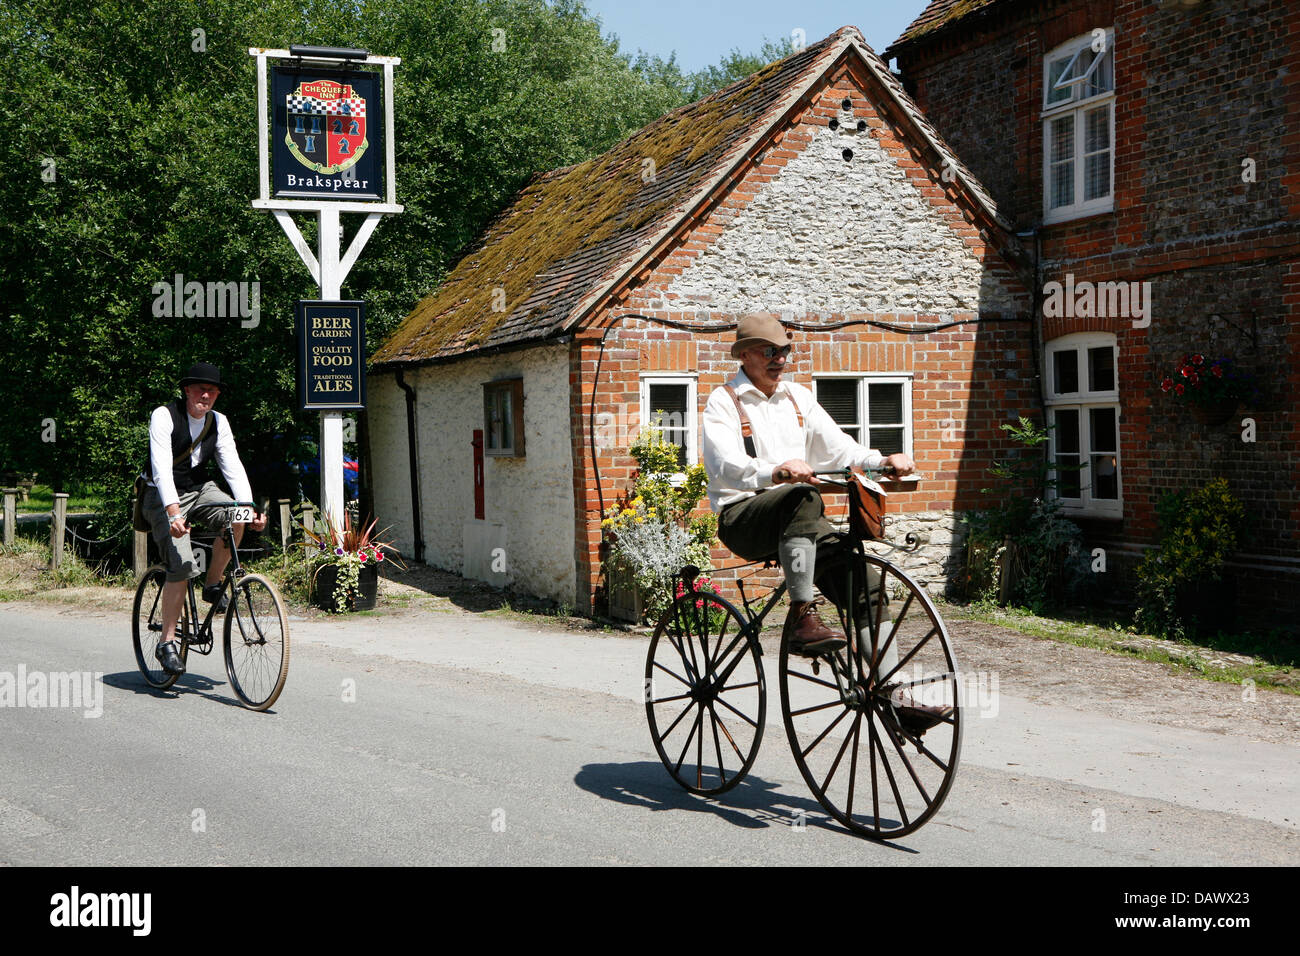 Vintage bone shaker bicycle being ridden by a man in period outfit. - Stock Image